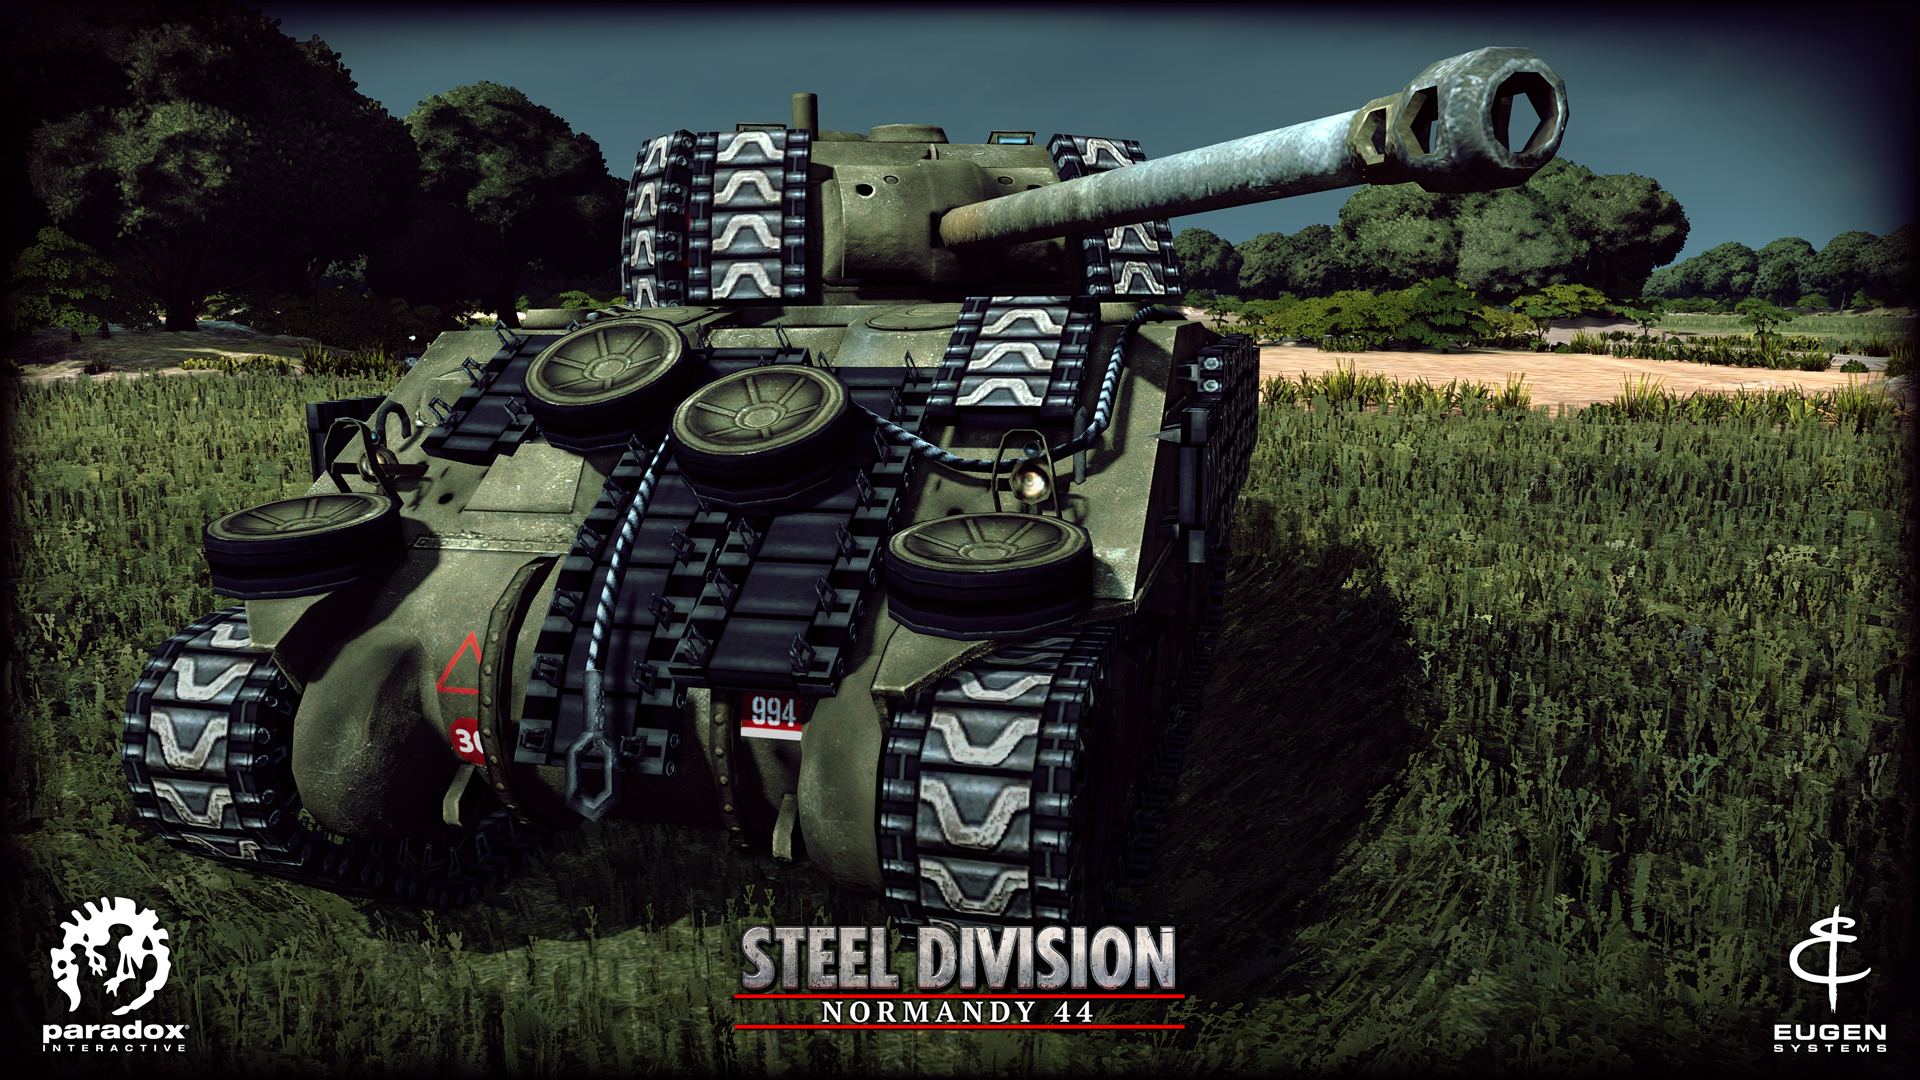 Steel Division: Normandy 44 Harris Ace